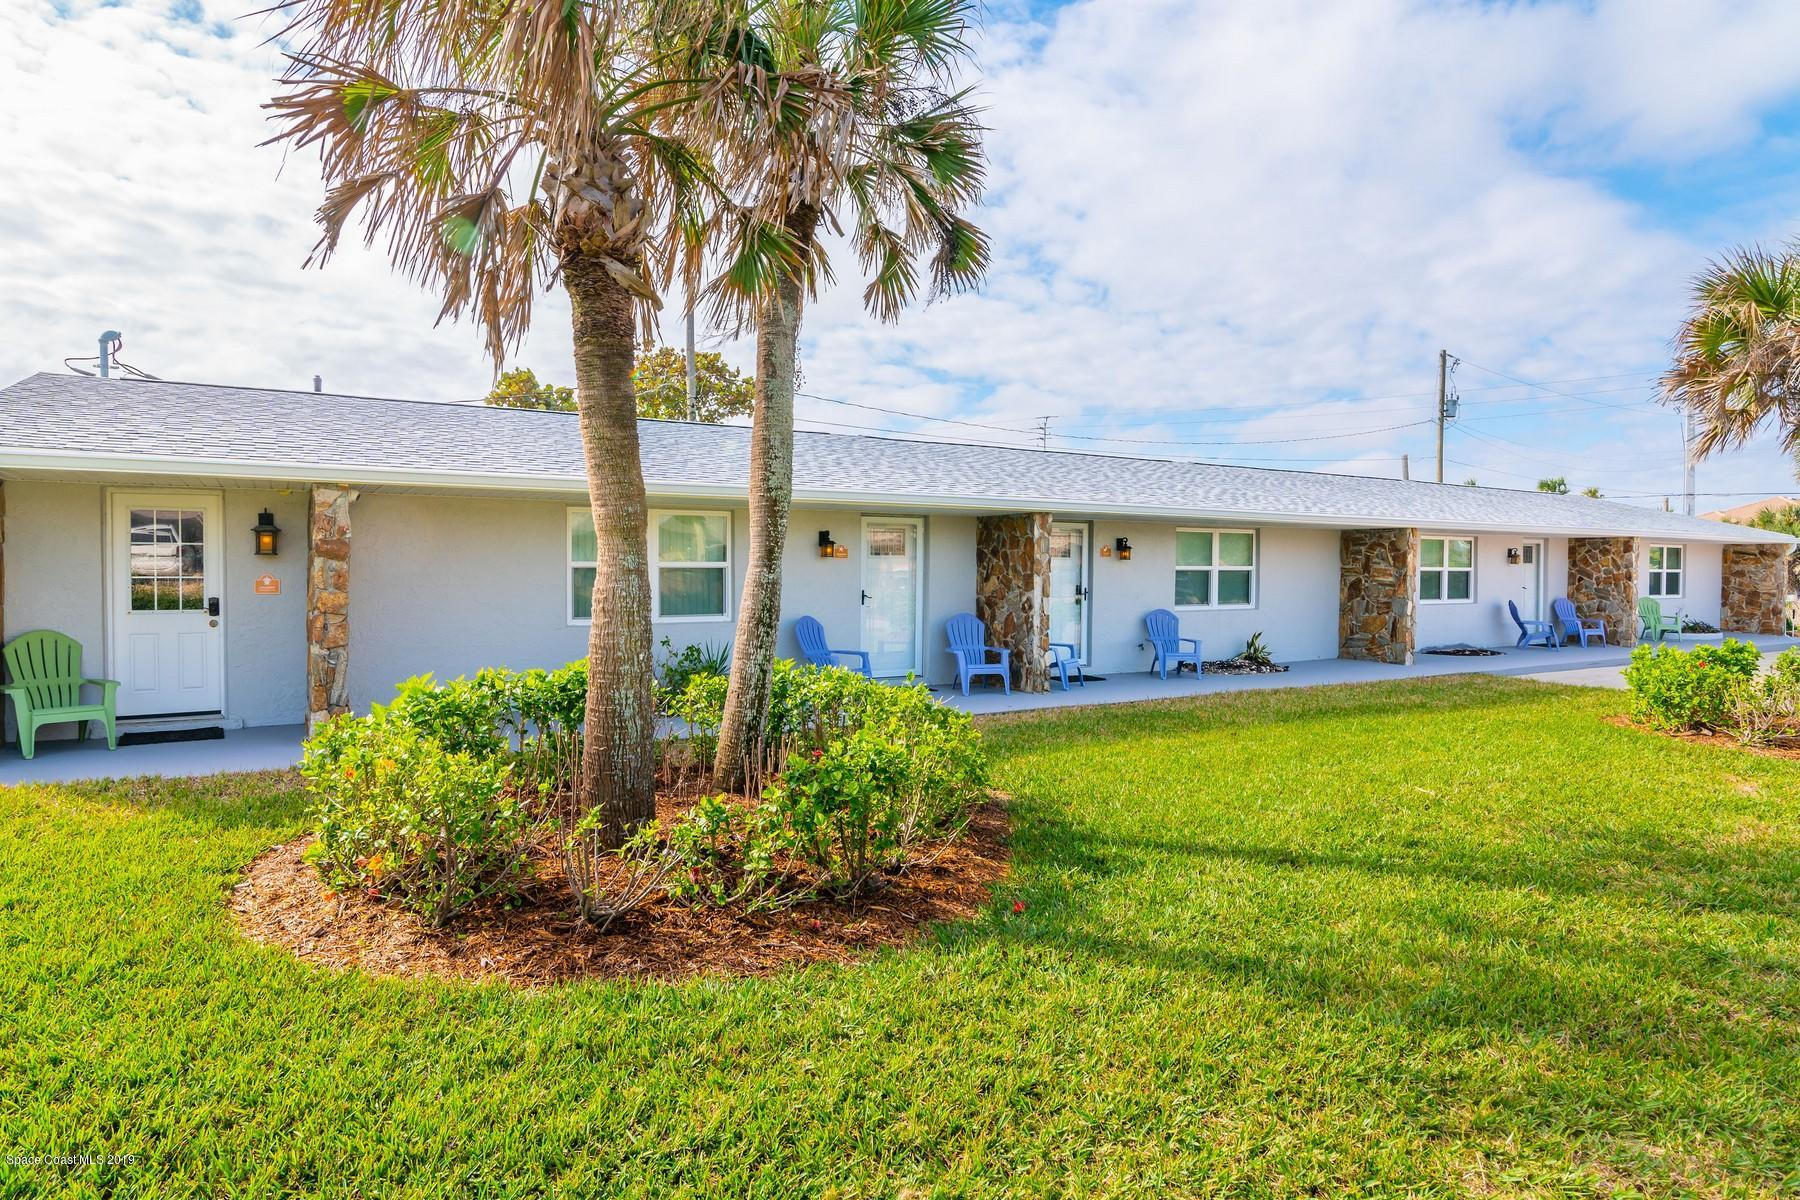 Commercial for Sale at 5695 S Highway A1a 5695 S Highway A1a Melbourne Beach, Florida 32951 United States